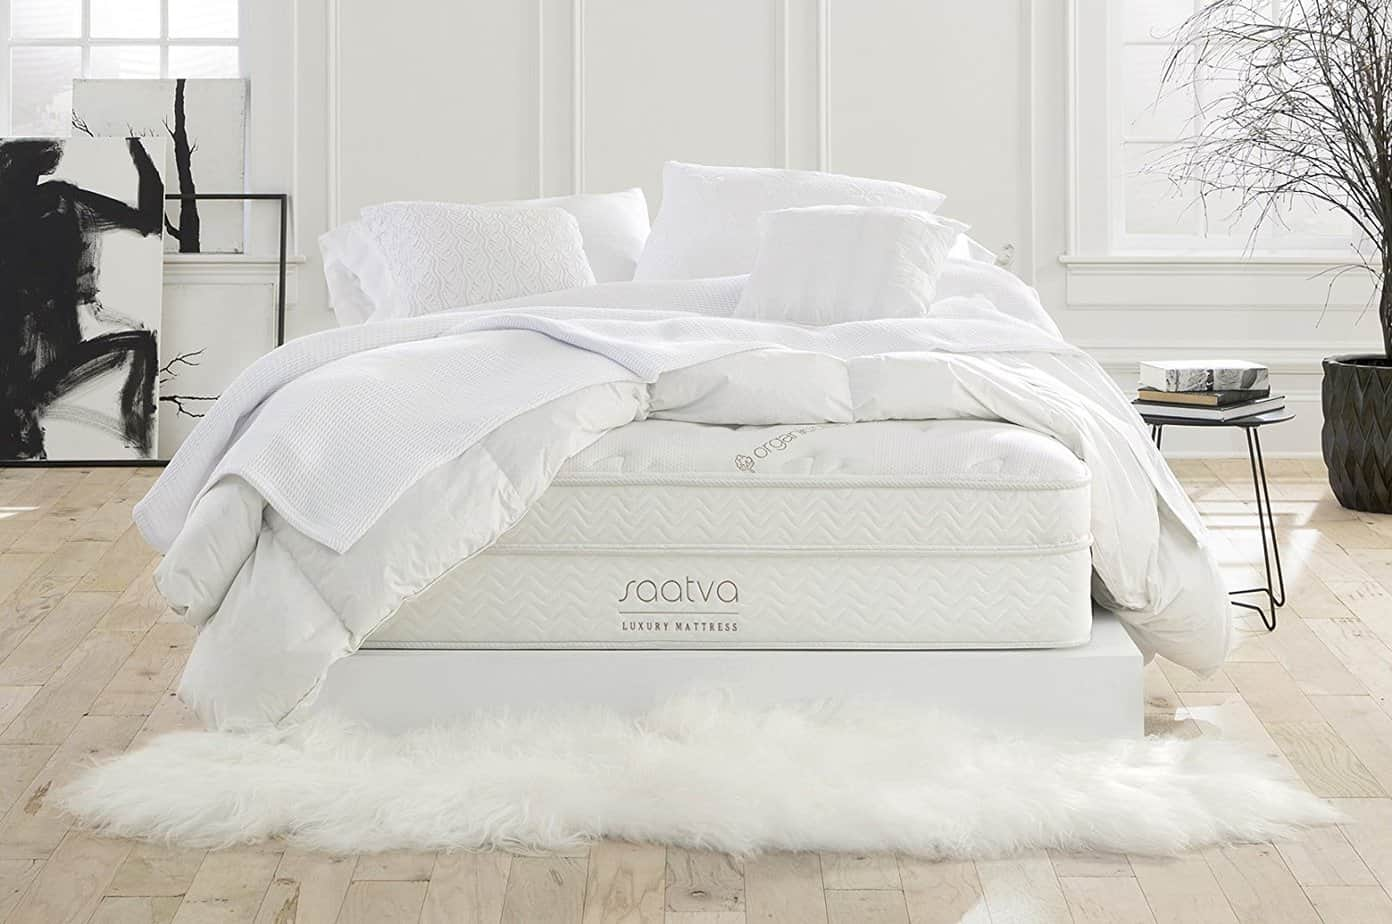 A New Way To Buy A Classic The Full Saatva Mattress